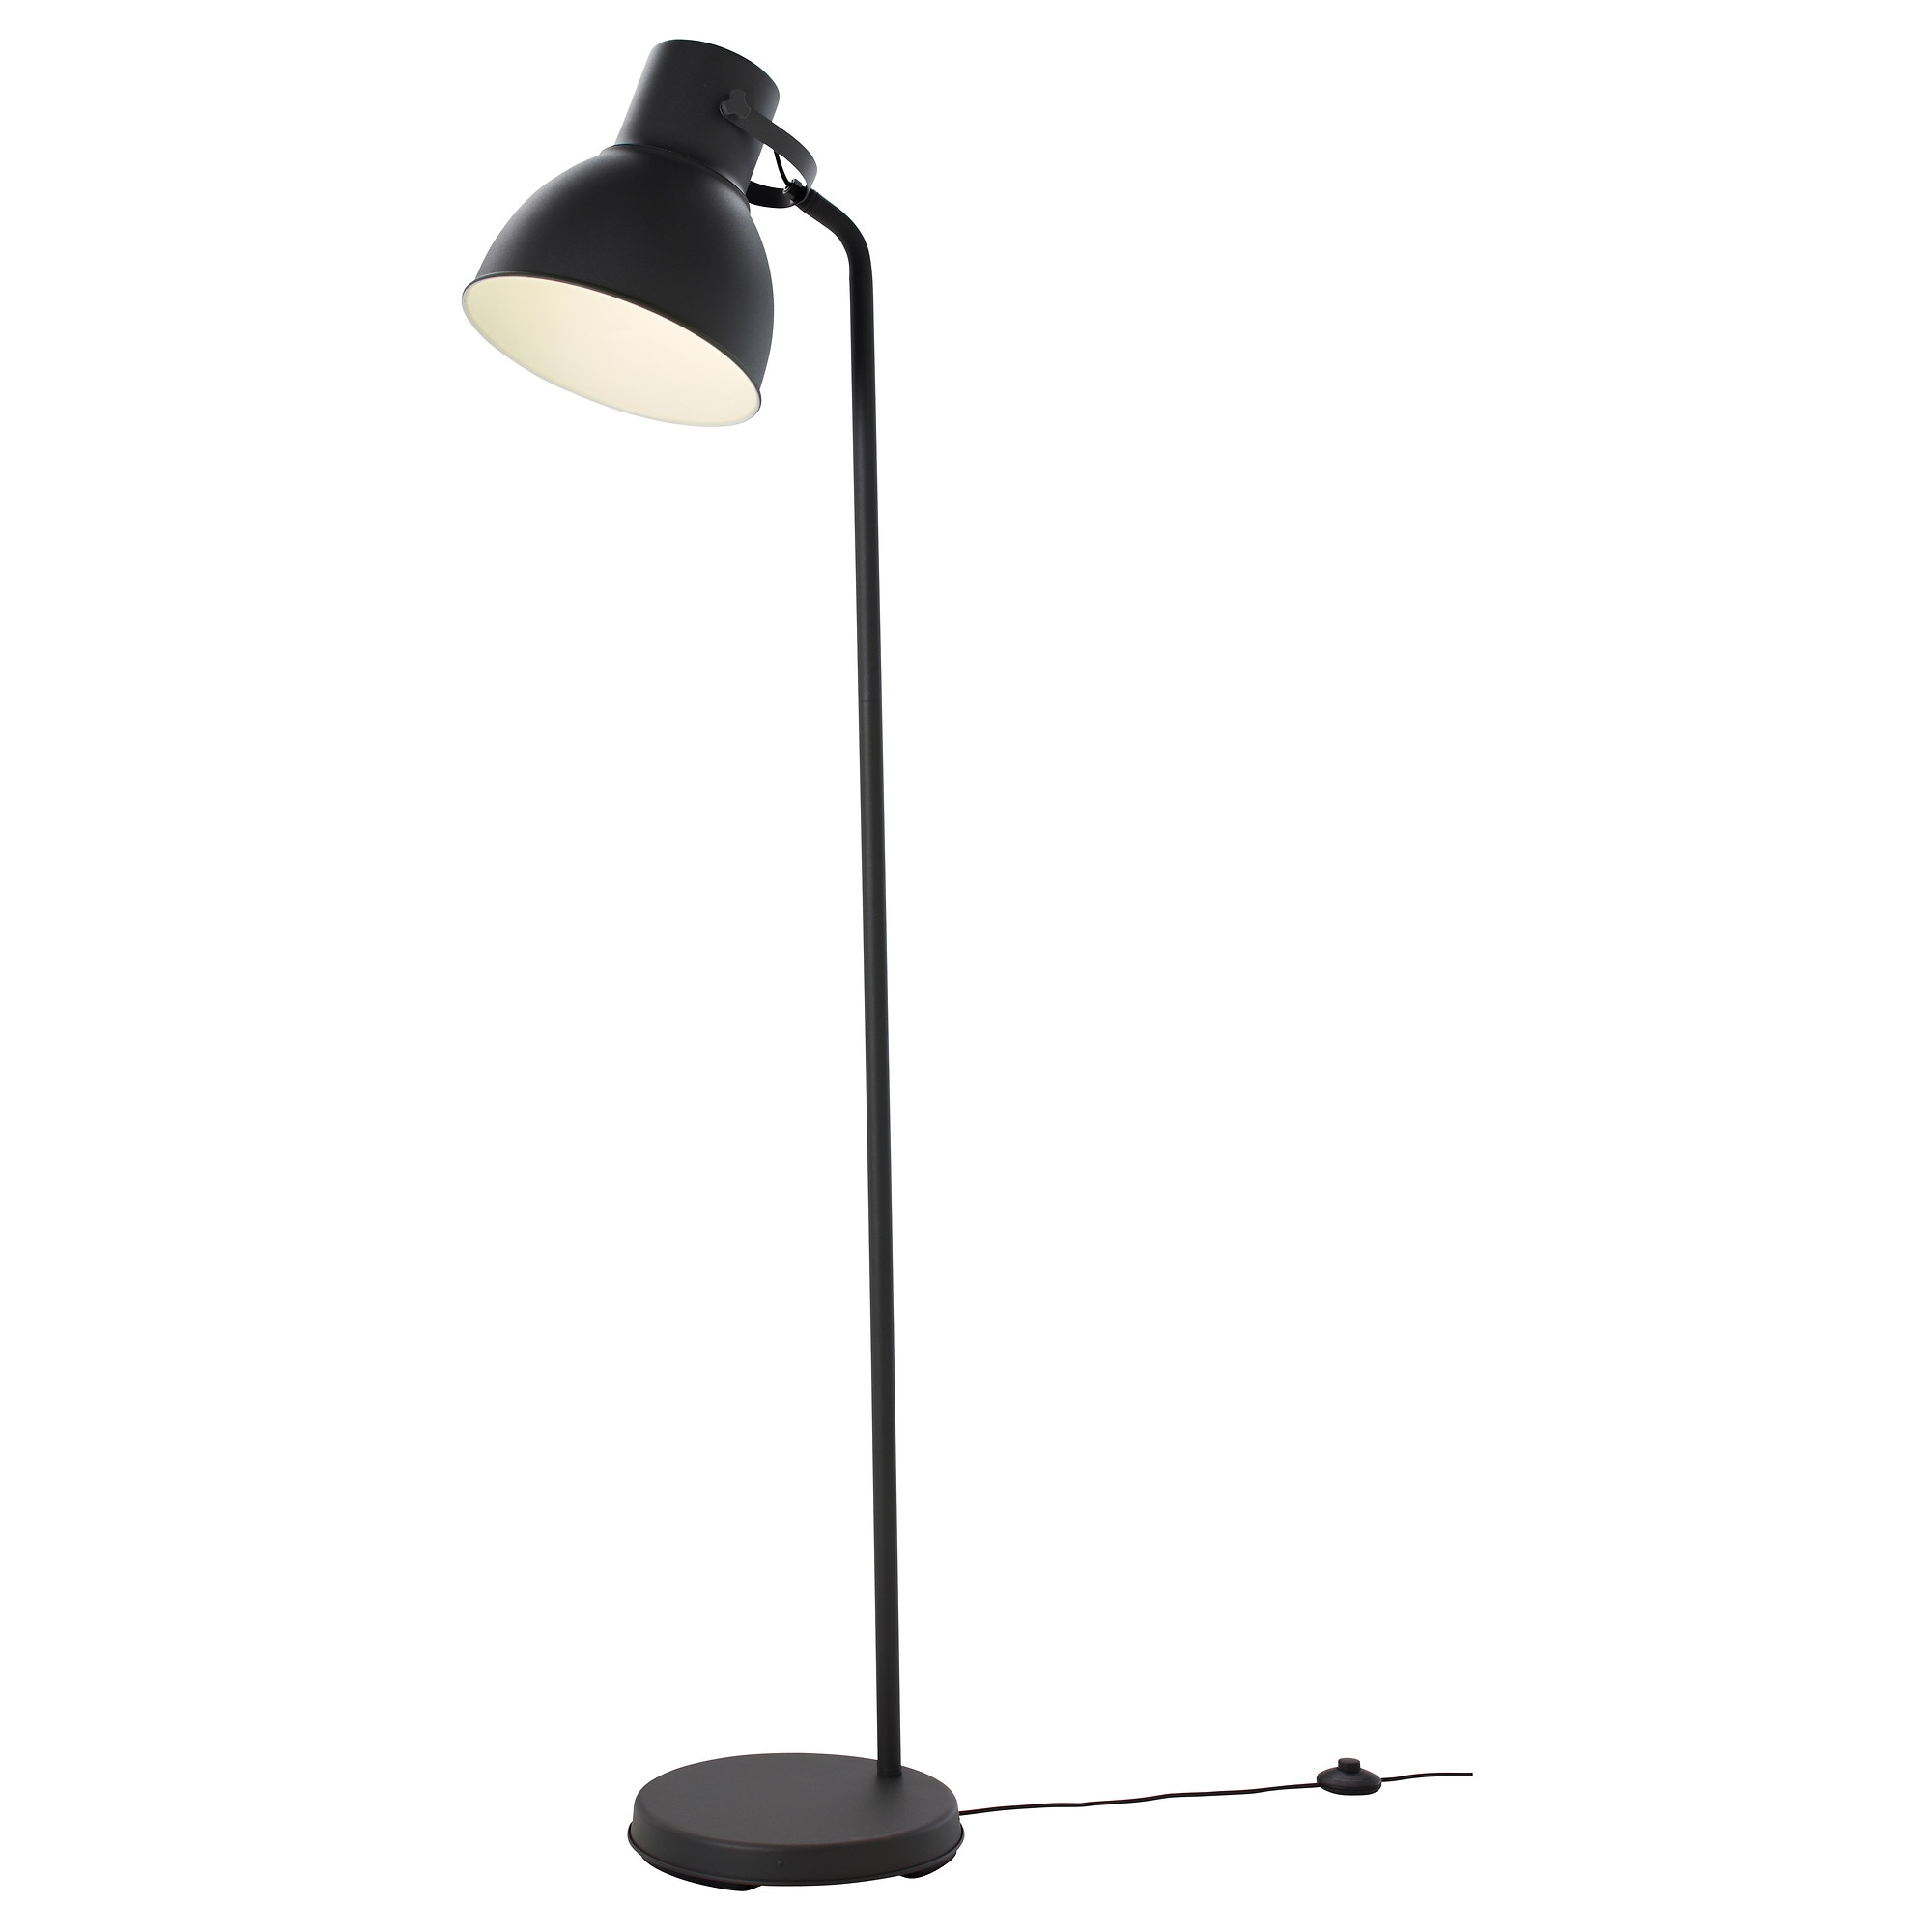 Ikea led desk lamp - Ikea Led Desk Lamp